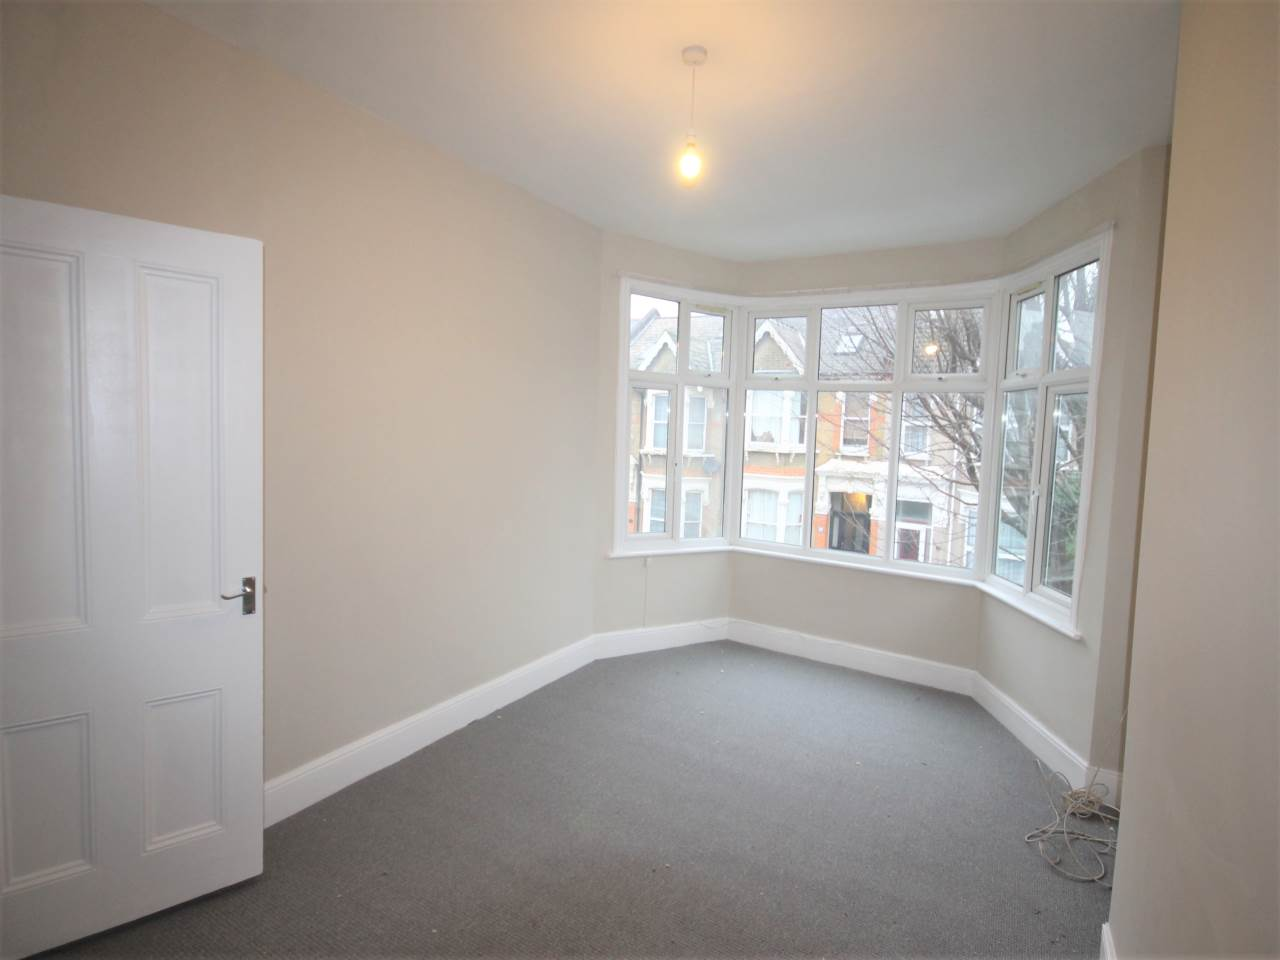 2 bed flat to rent in Cleveland Park Crescent, Walthamstow  - Property Image 1